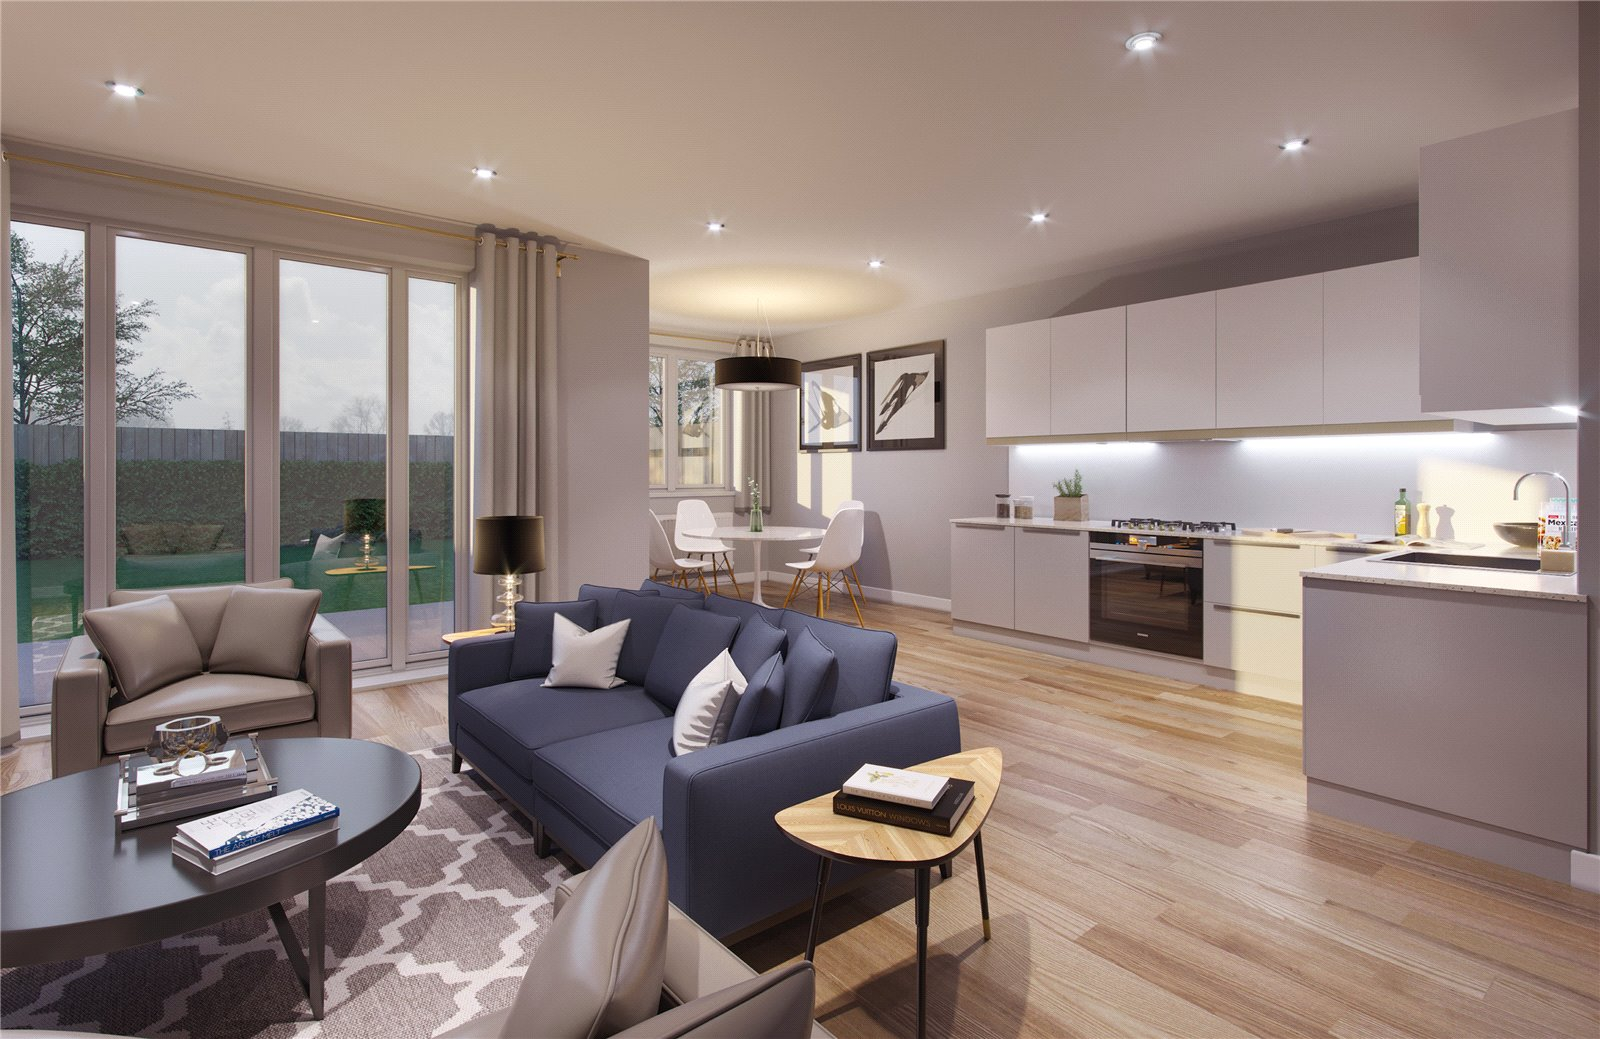 2 Bedrooms Apartment Flat for sale in Frimley Road, Camberley, Surrey, GU15